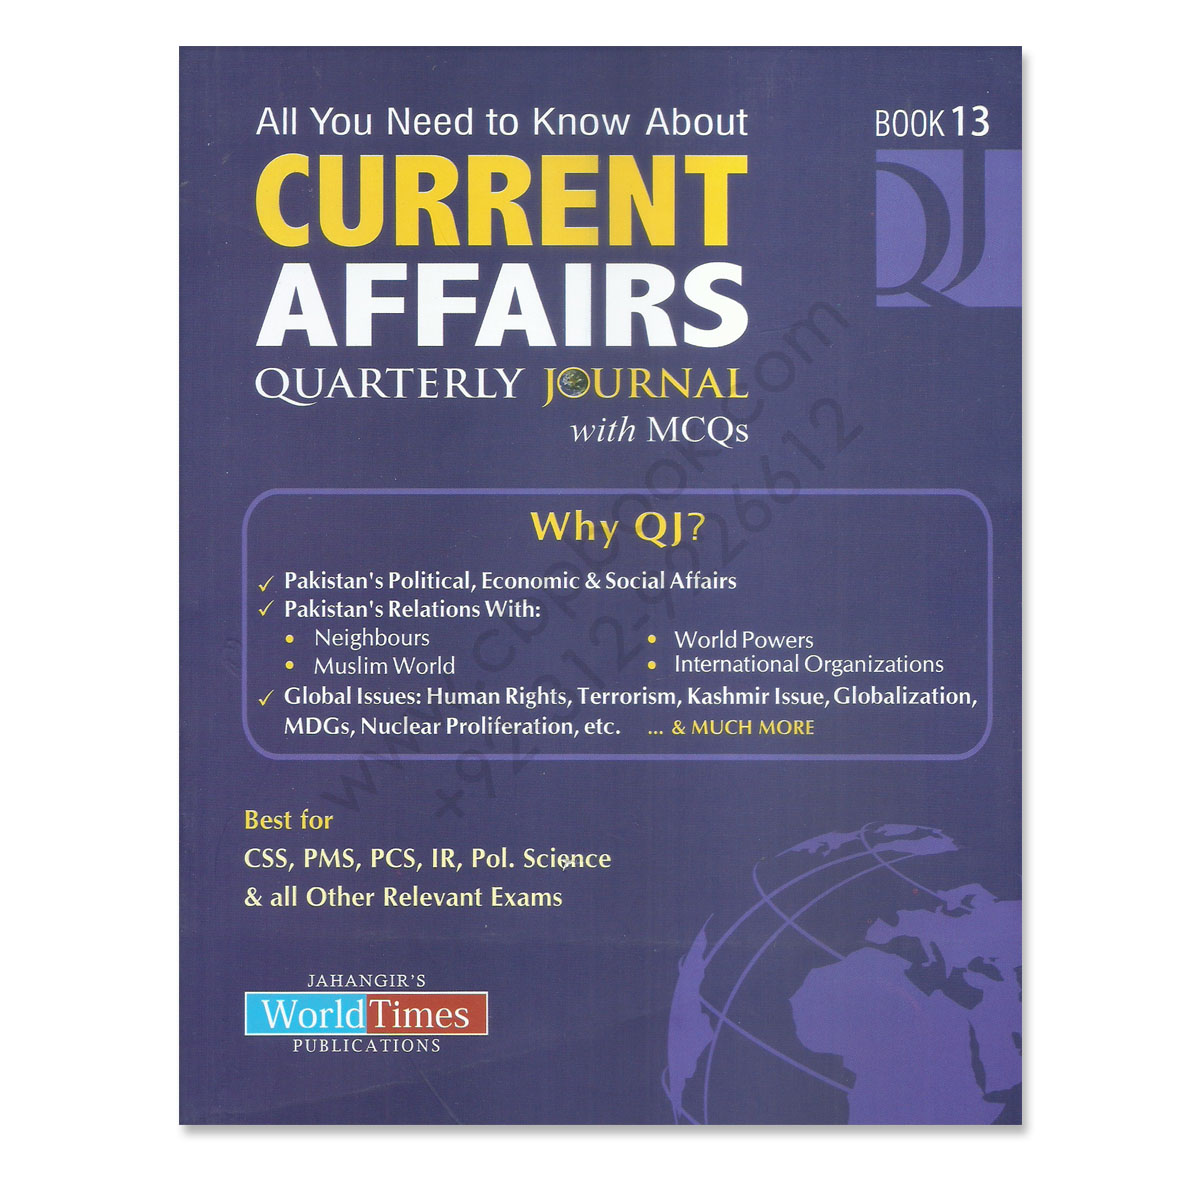 latest current essays current affairs for css 2016 by d line current affairs quarterly journal mcqs book 13 jahangir book